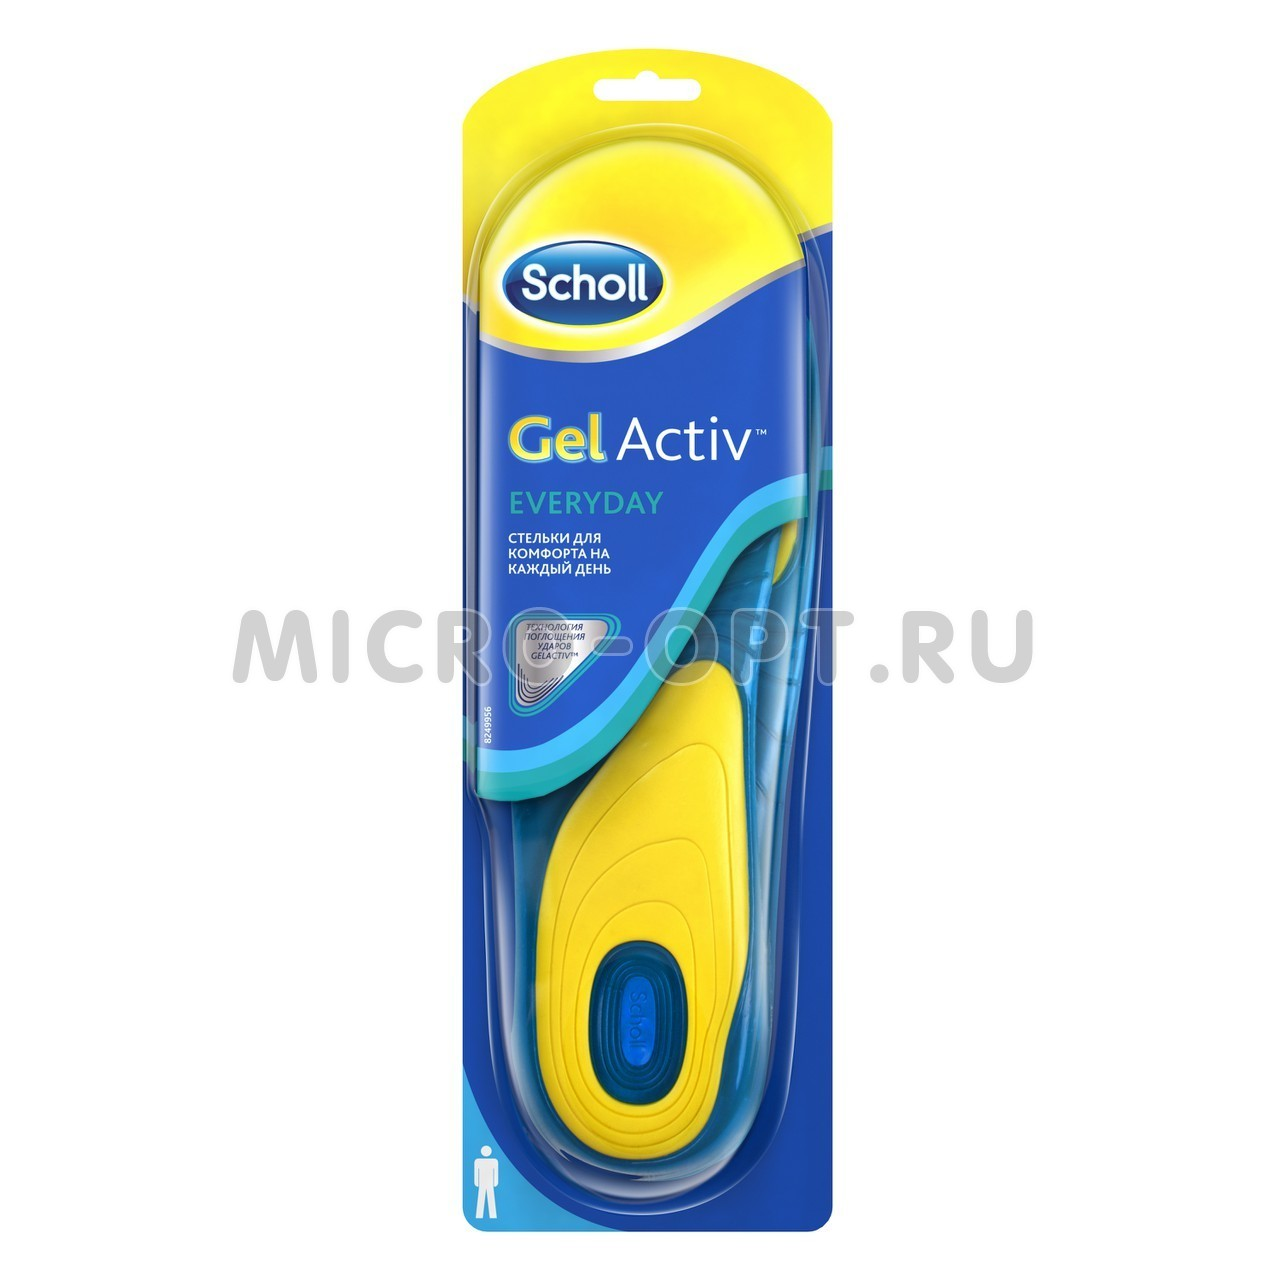 Scholl_GelActiv_Everyday_MEN_jpg__1516973991_136